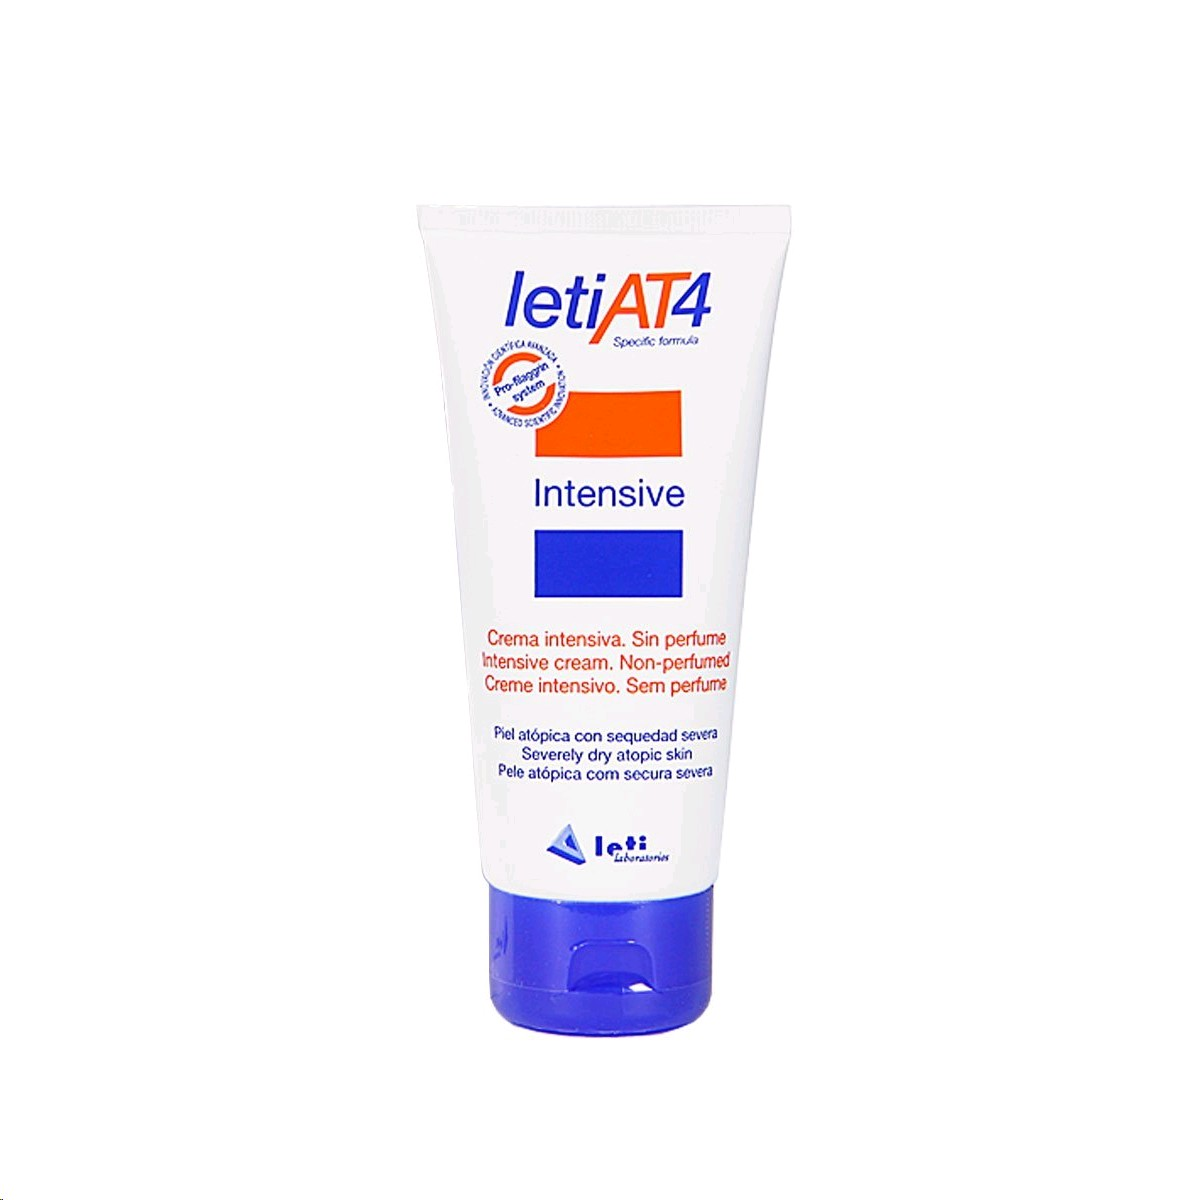 LETI AT4 CREMA INTENSIVA 100 ML